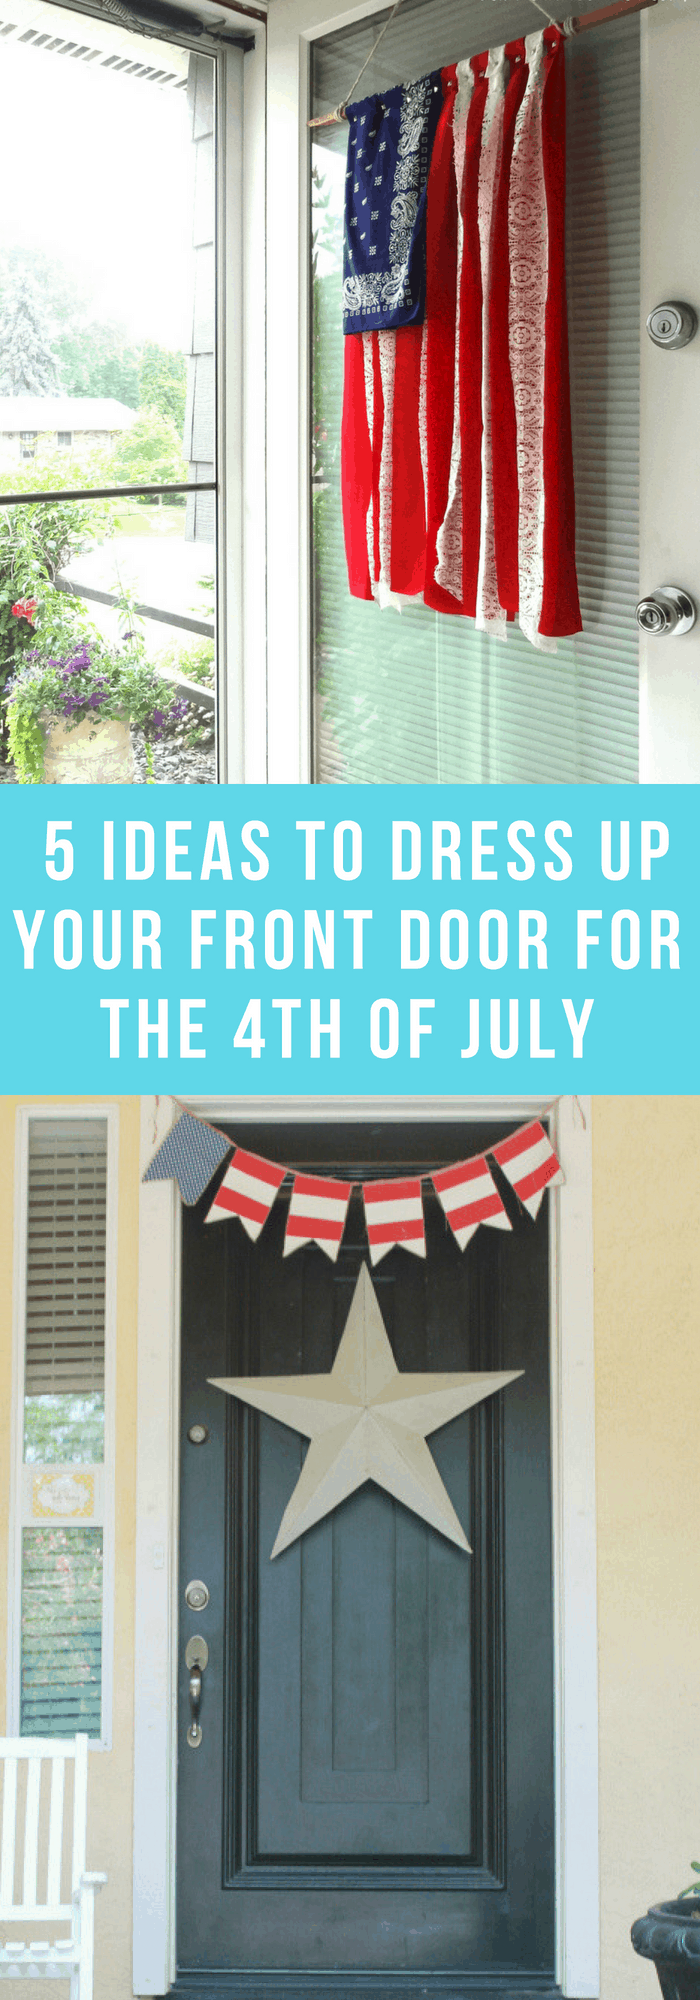 Holiday Decor--5 IDeas to Dress Up Your Front Door for the 4th of July--The Organized Mom